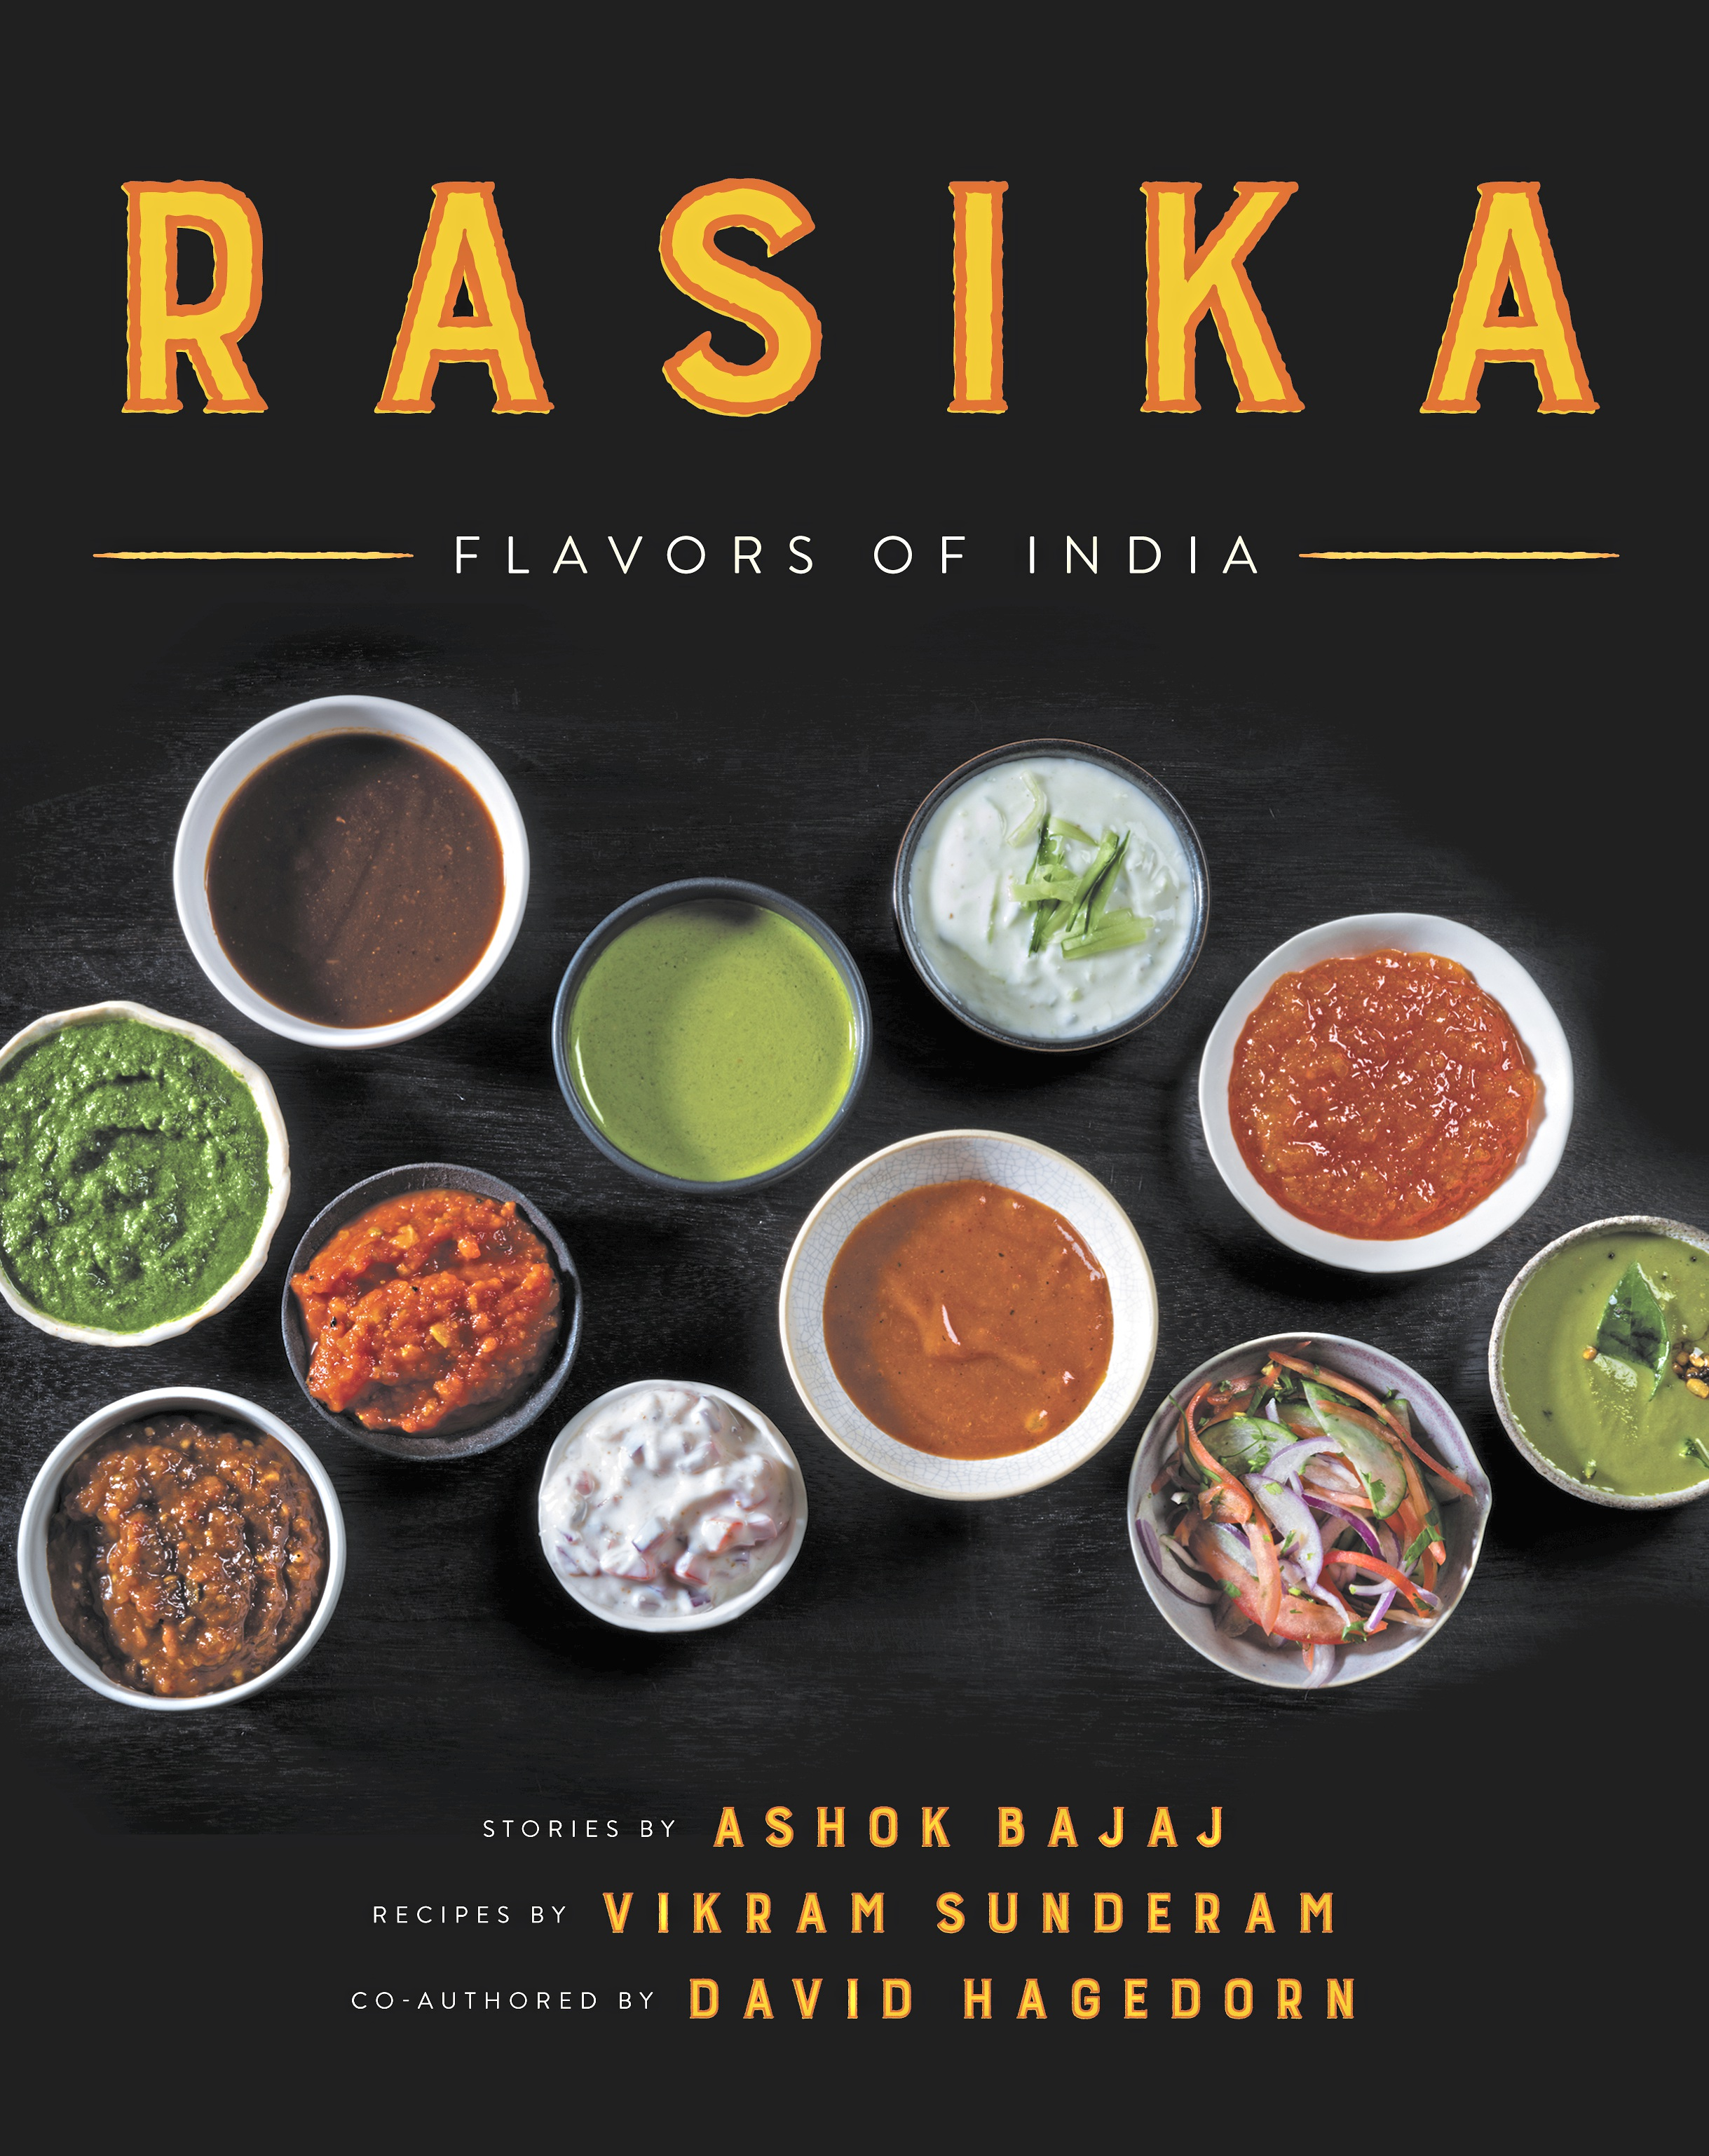 Rasika hc c The Indian restaurant Rasika in Washington, D.C., has come out with its first cookbook.